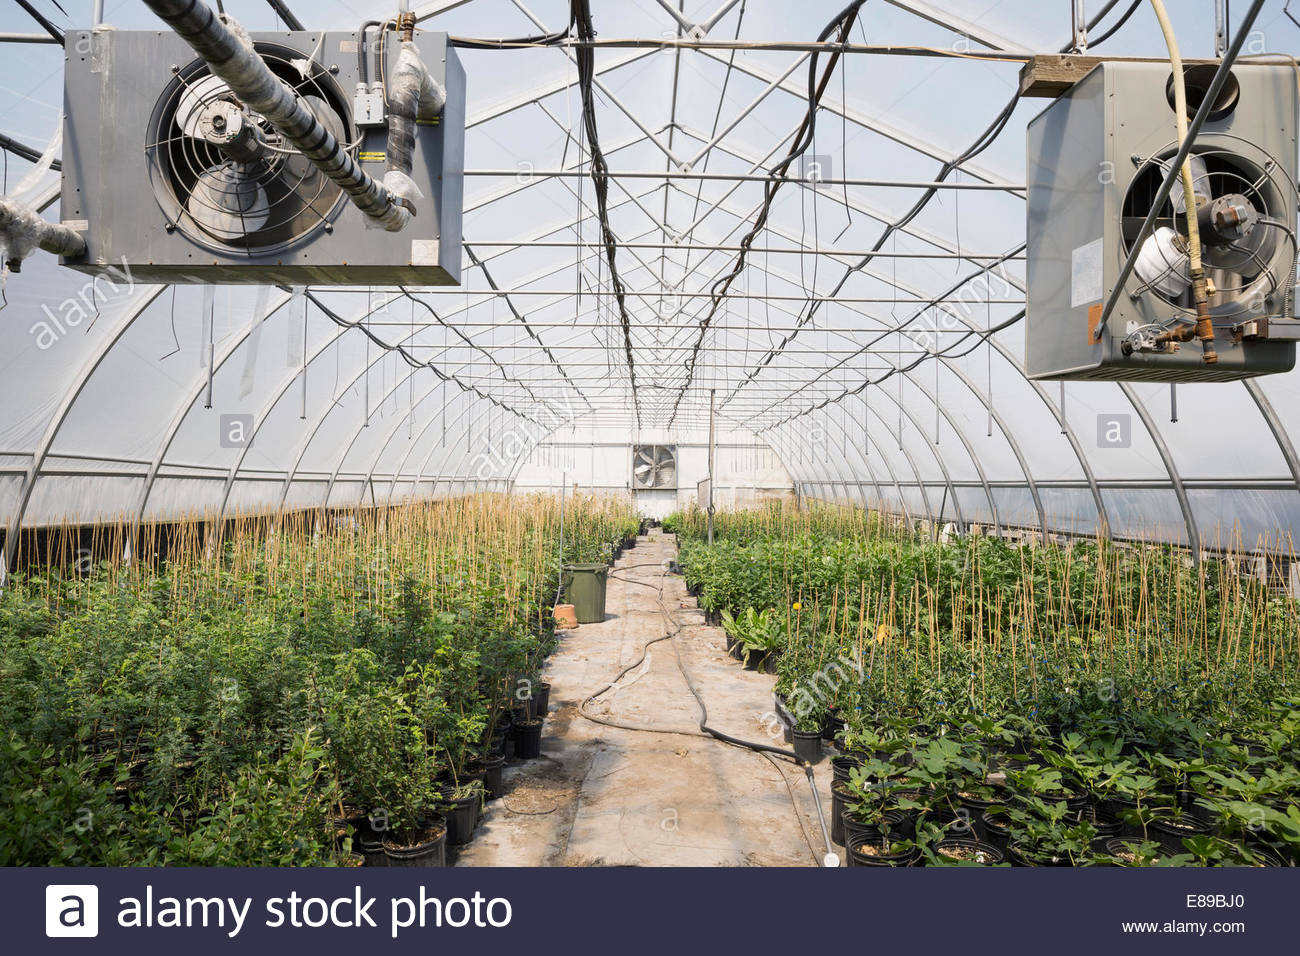 Rows of plants in greenhouse - Stock Image